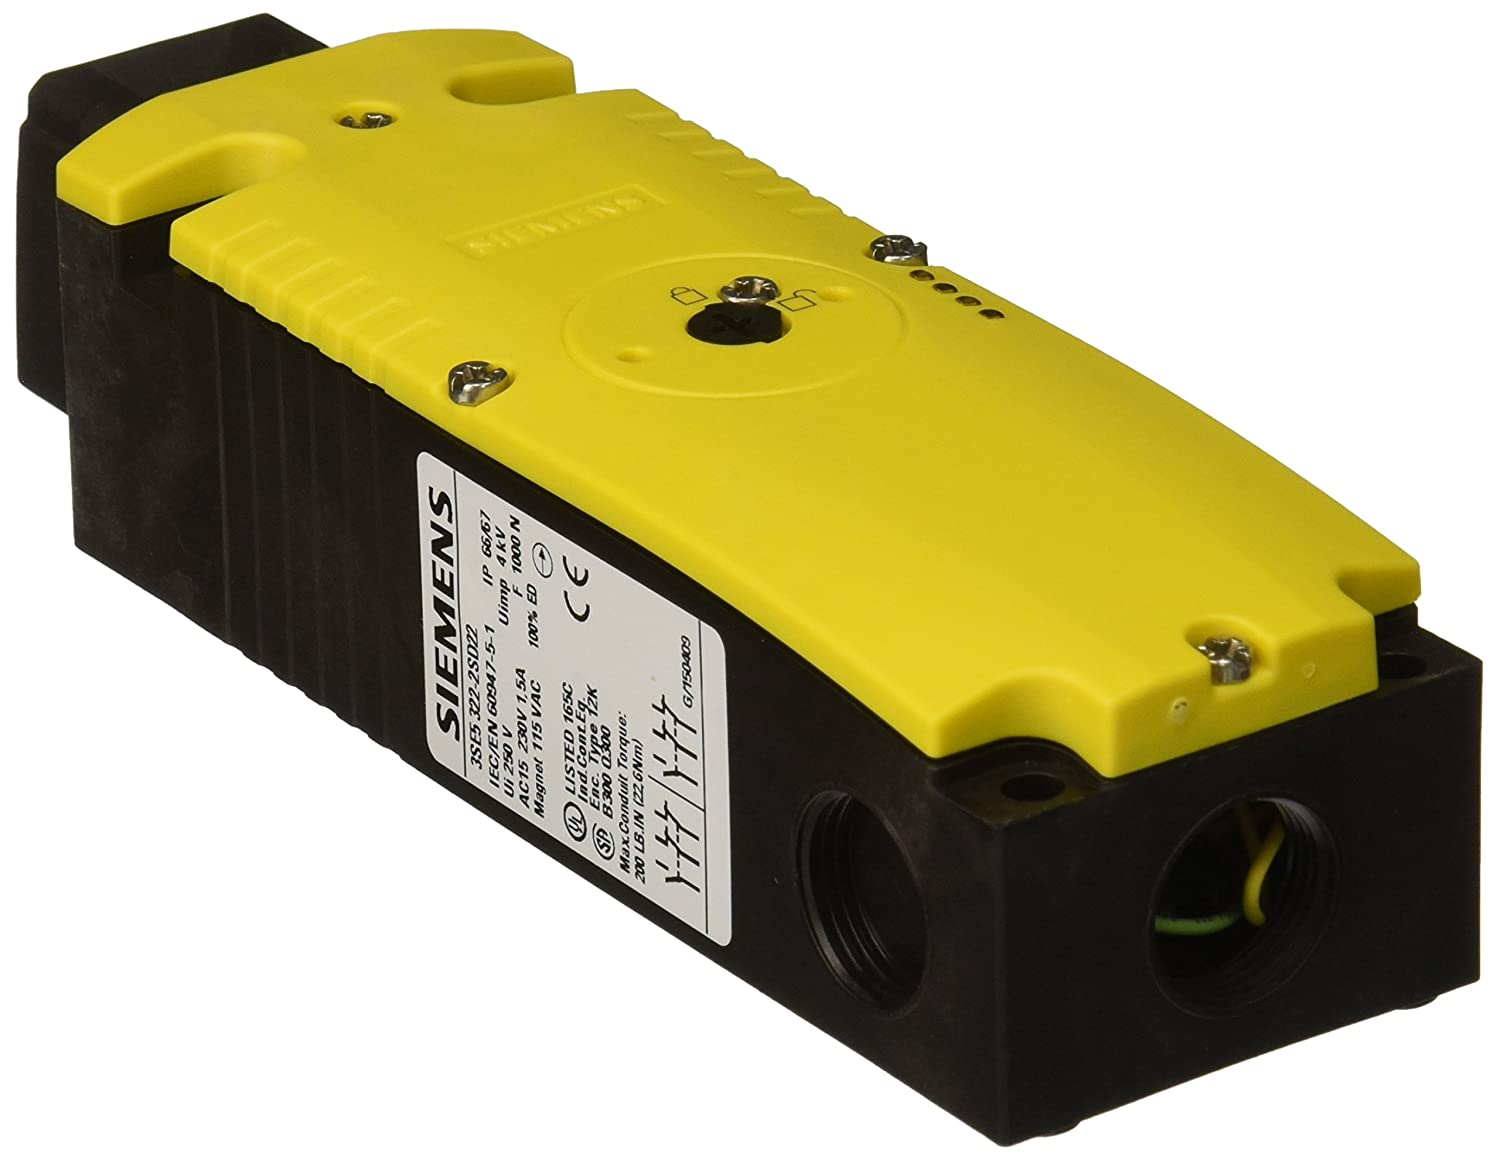 Yellow//Green LEDs 54mm Plastic Enclosure Escape Release From the Back 230VAC Rated Operational Voltage 3SE53223SG23 1300N Locking Force Siemens 3SE5 322-3SG23 Interlock Switch Auxiliary Release From The Front Spring Actuated Locks